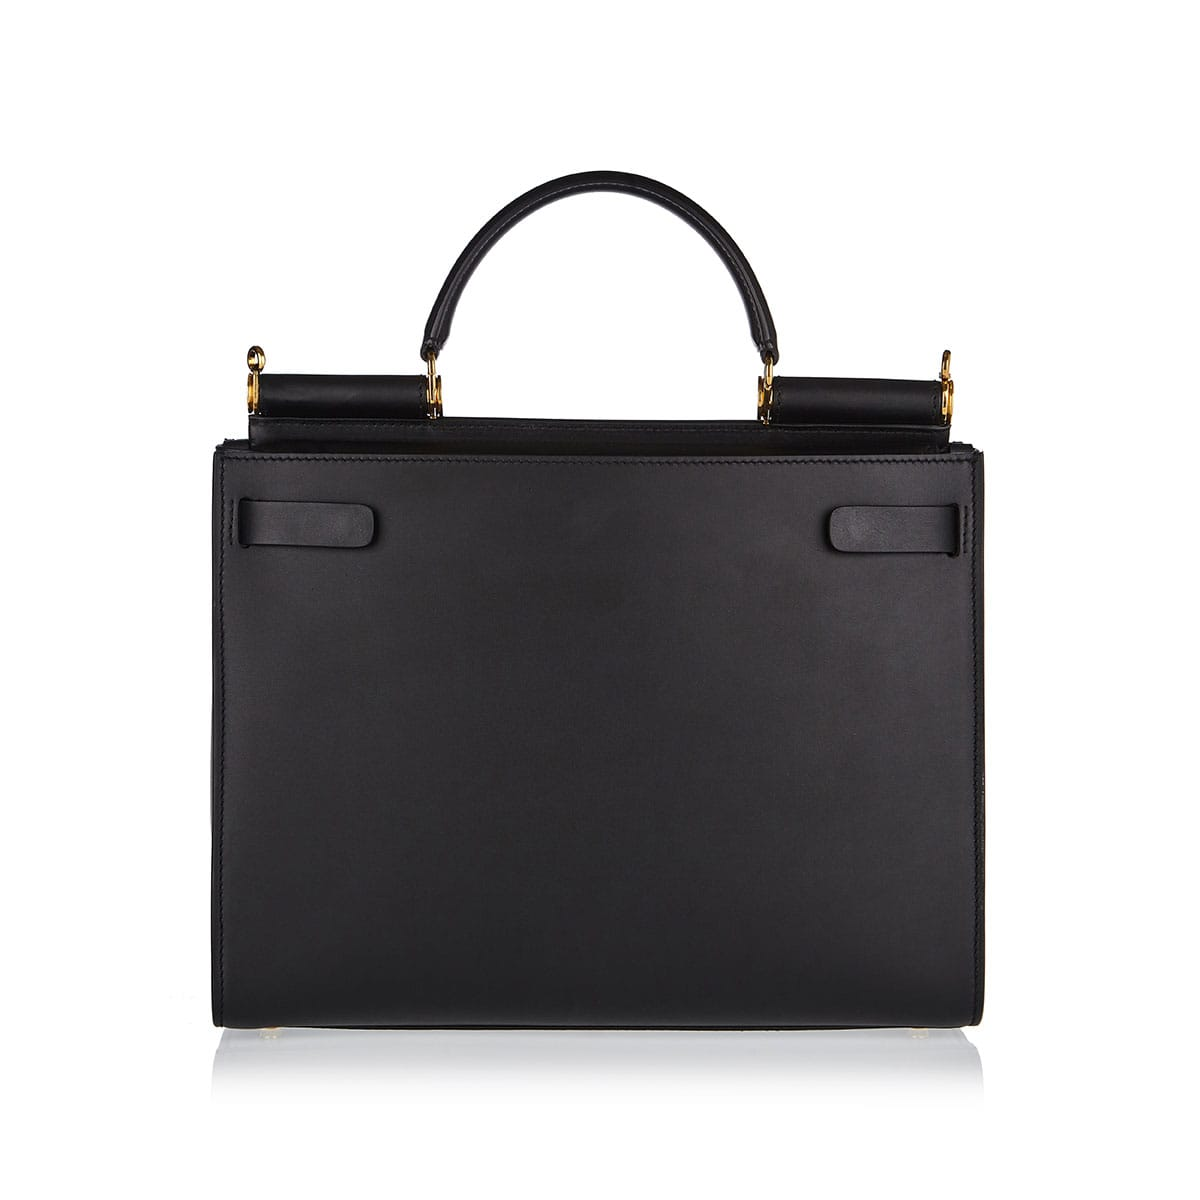 Sicily 62 leather bag